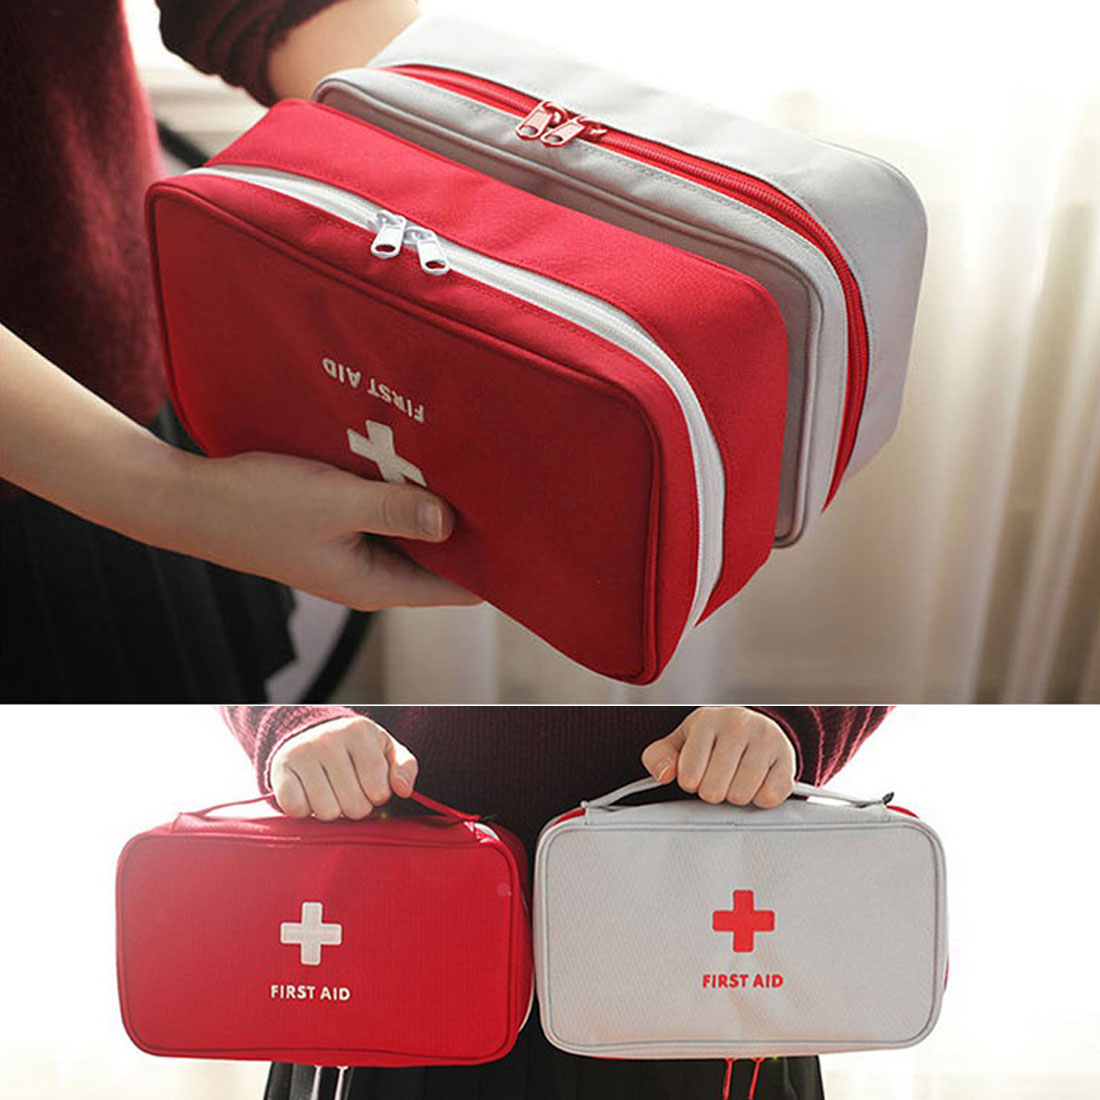 Hot Sale Emergency Camping Medical Pack First Aid Kit Bag Waterproof Car First Aid Kit Bag Outdoor Travel Survival Kit Empty Bag